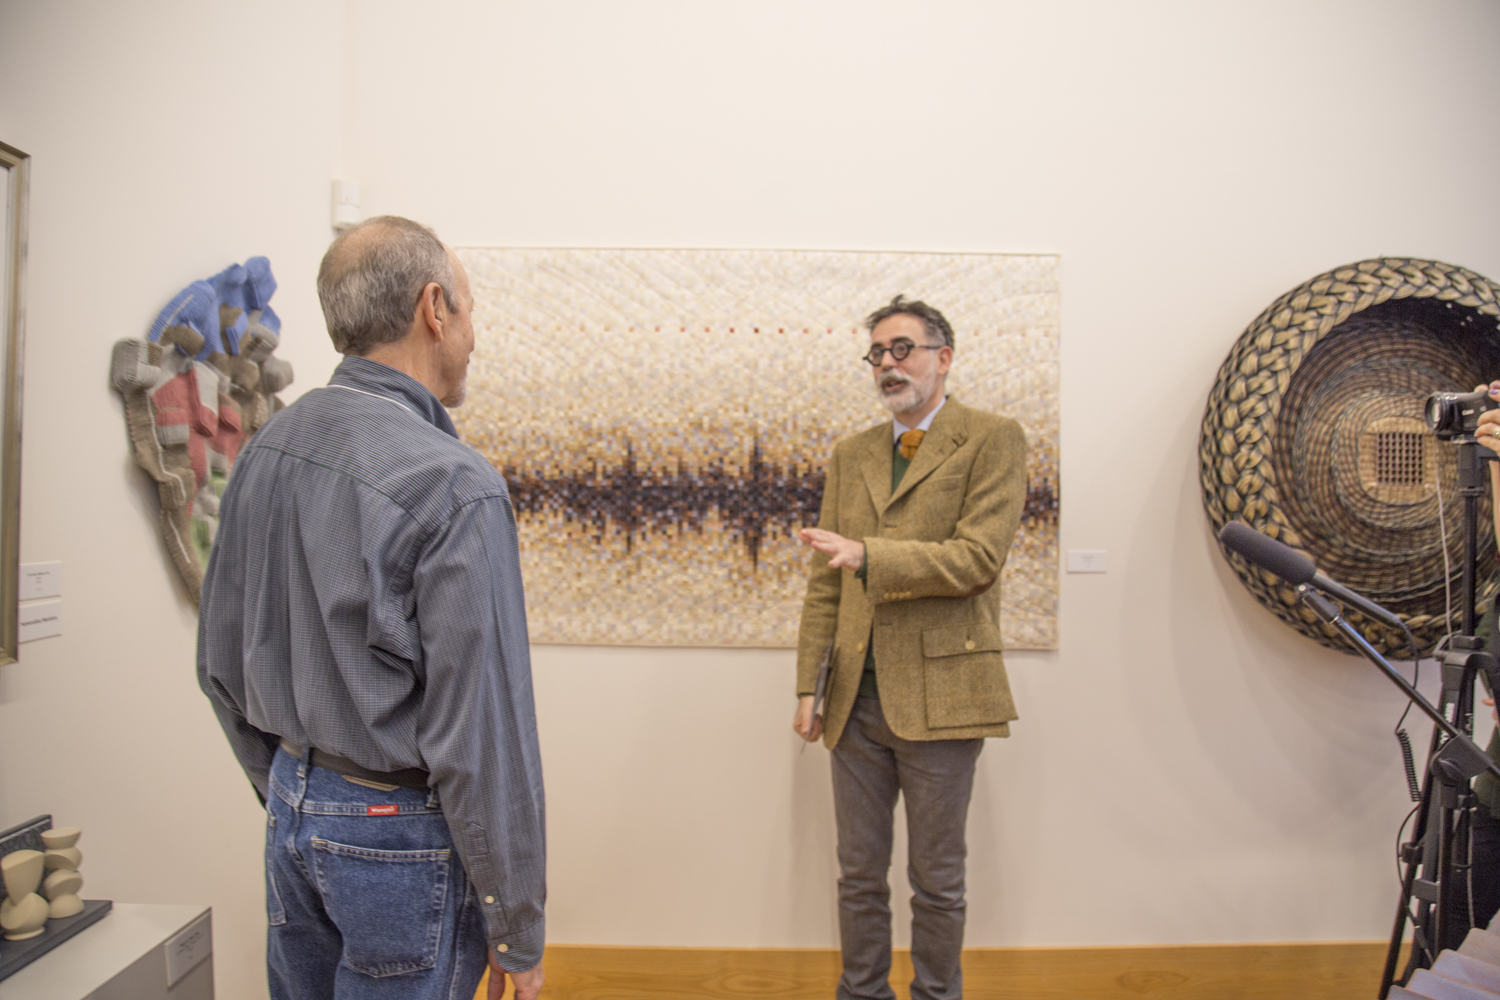 Stefano engaging with Al Canner (CO), Mesa County (A Cubist's View), (left wall)